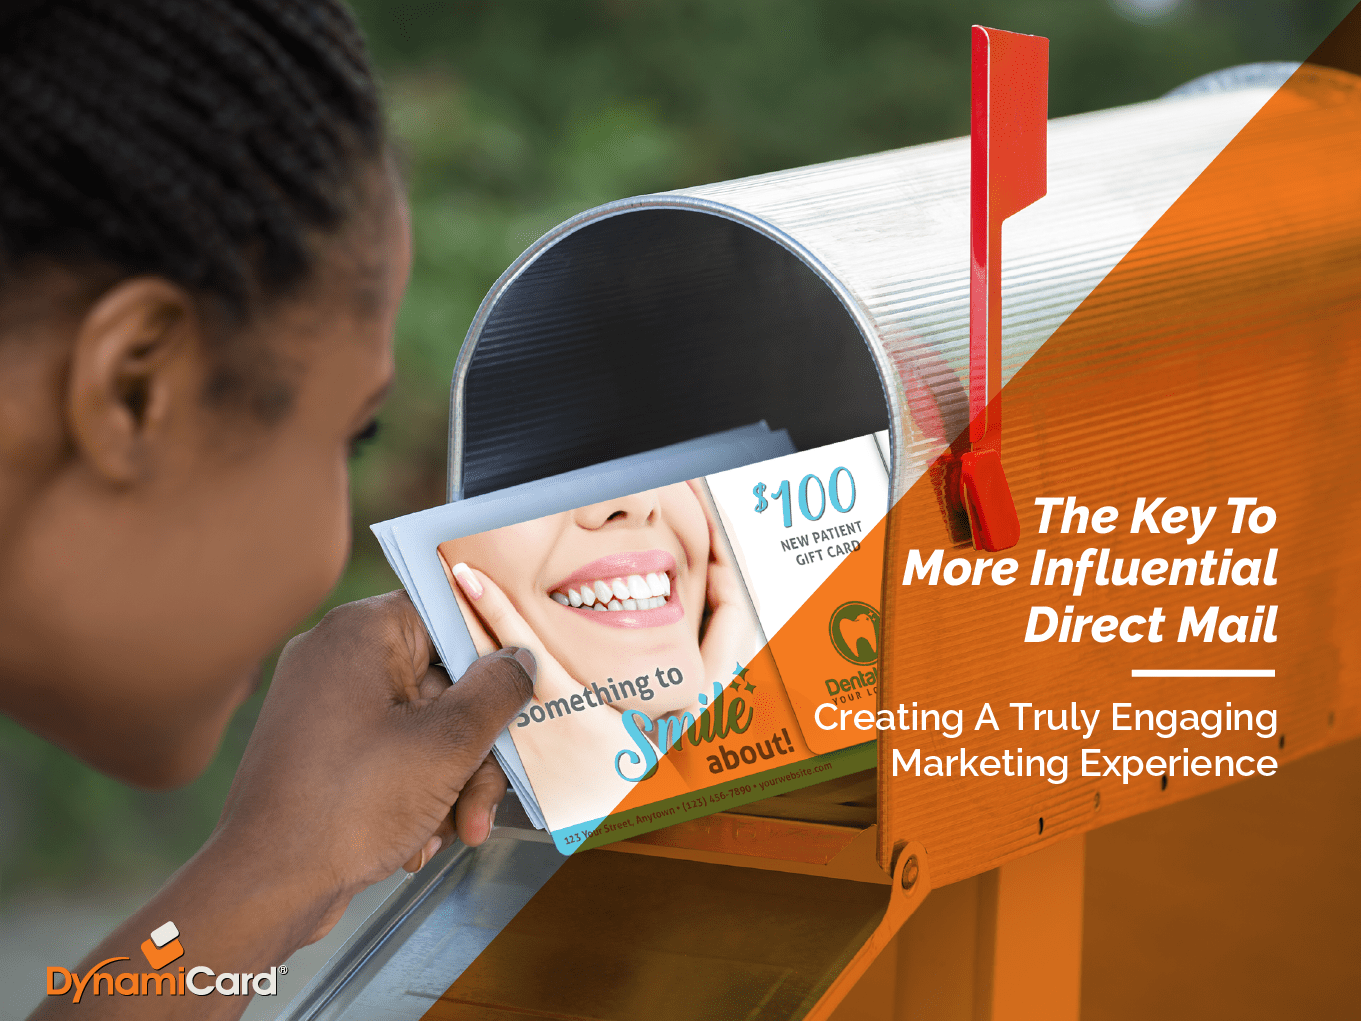 The Key to More Influential Direct Mail Than Ever Before